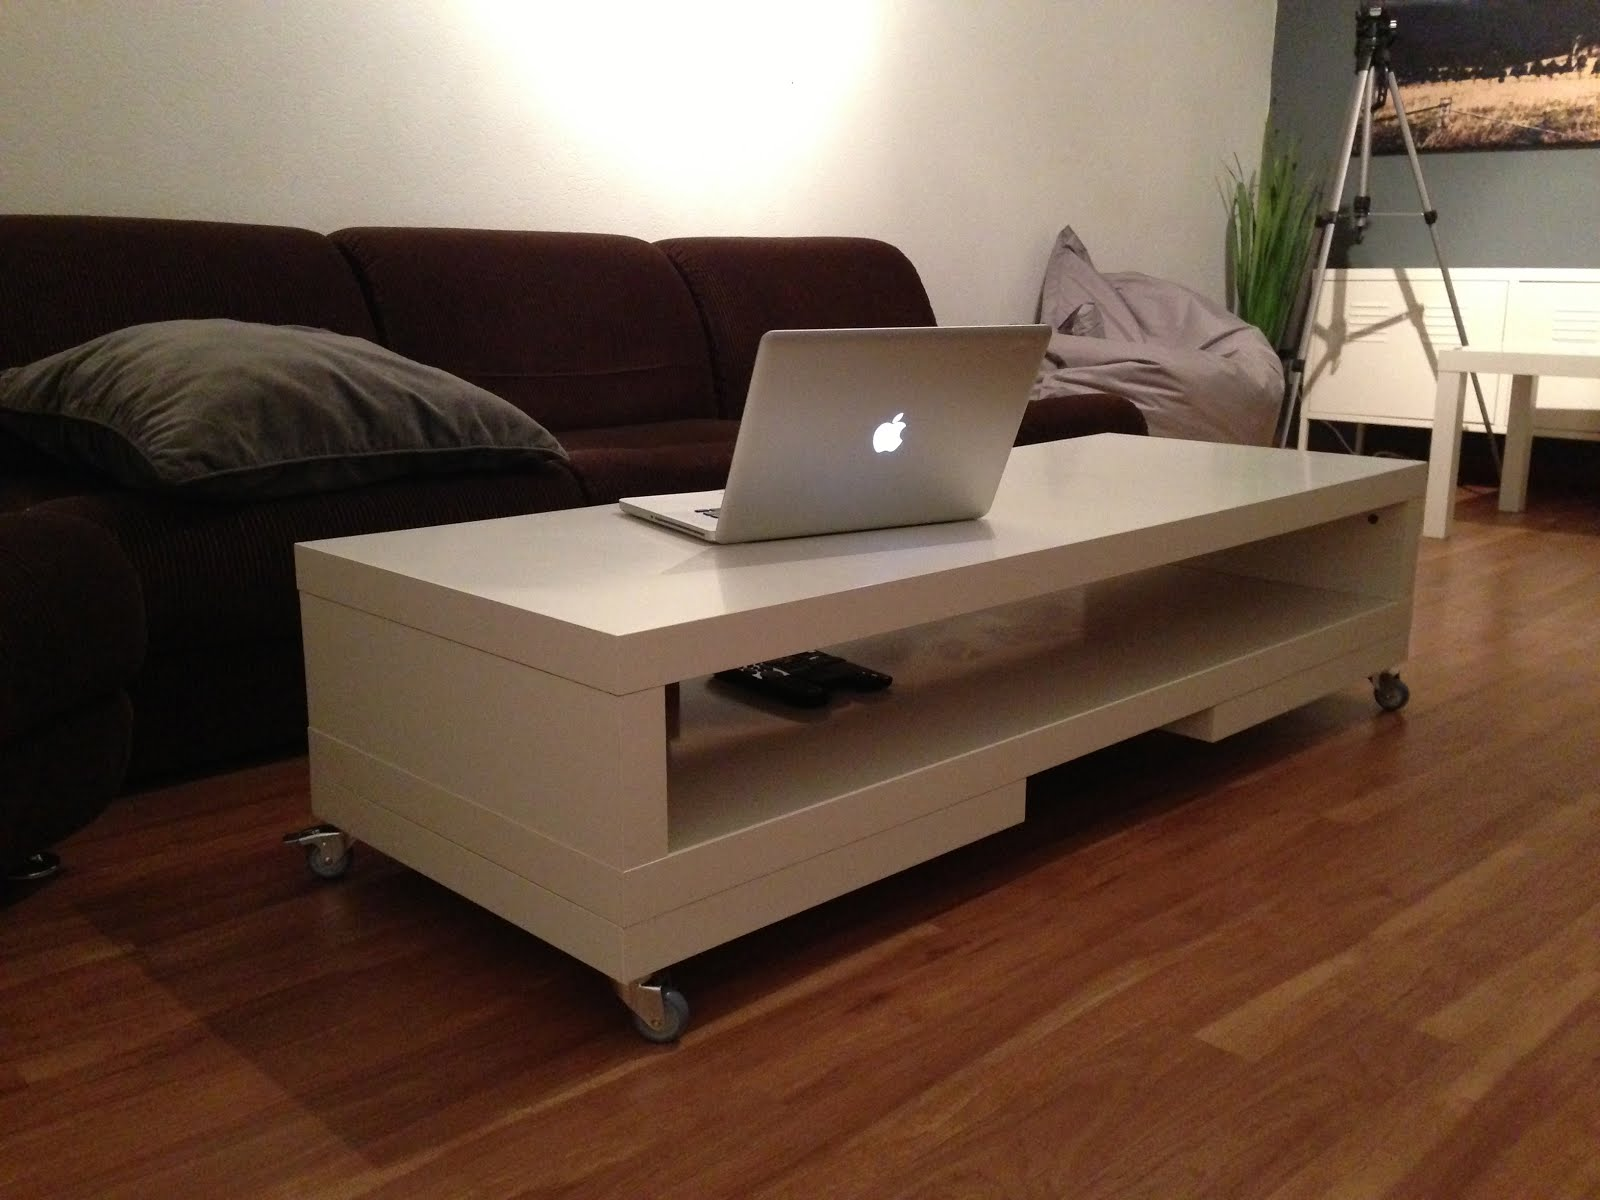 Lack tv unit again coffee table ikea hackers materials lack tv unit 2x lack side tables rill caster geotapseo Images